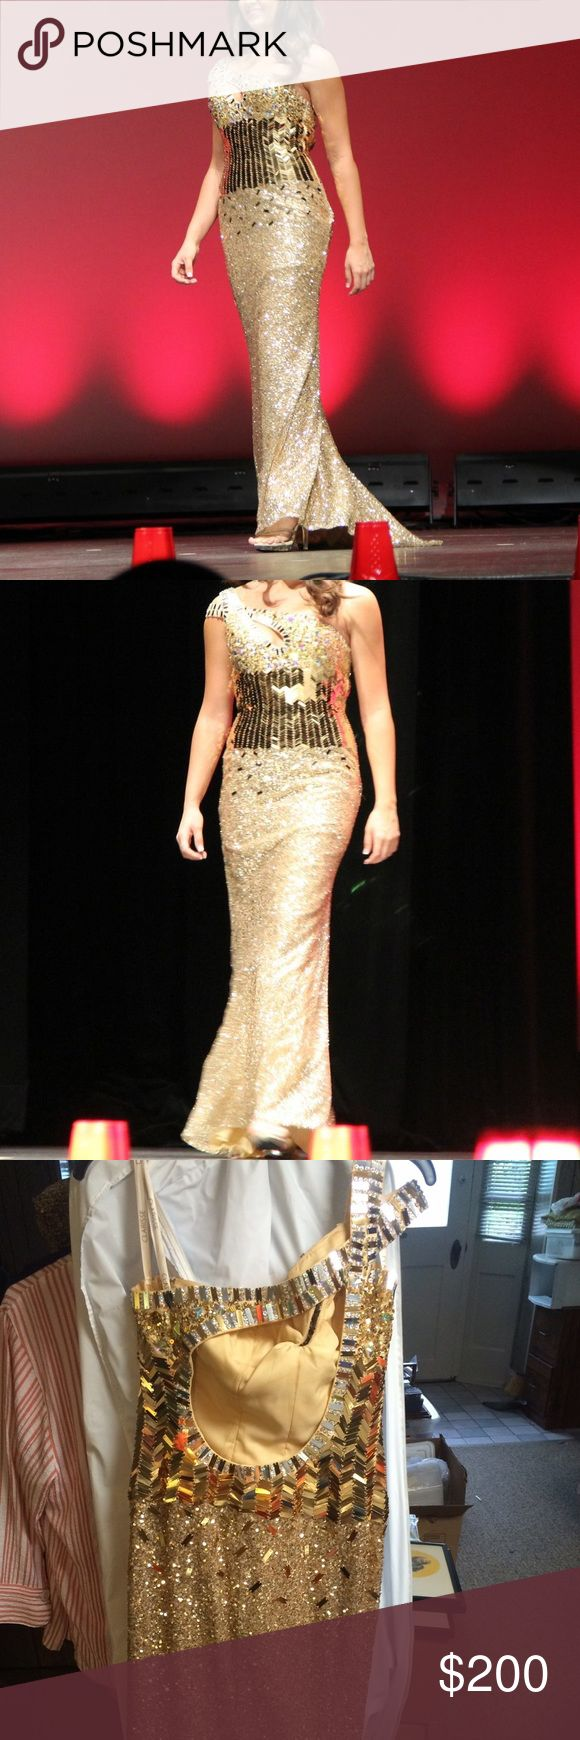 Clarisse Prom/Pageant Gown This STUNNING gold gown is perfect for prom or pageant. Worn a few times for pageants but in great condition. Small spray tan stains on inside lining near tag and under arms (but can't be seen from the outside). Bodice with gold chevron like pattern and from the waist down has gold sequins all the way down. Floor length. Key hole on chest and back. Clarisse Dresses Prom